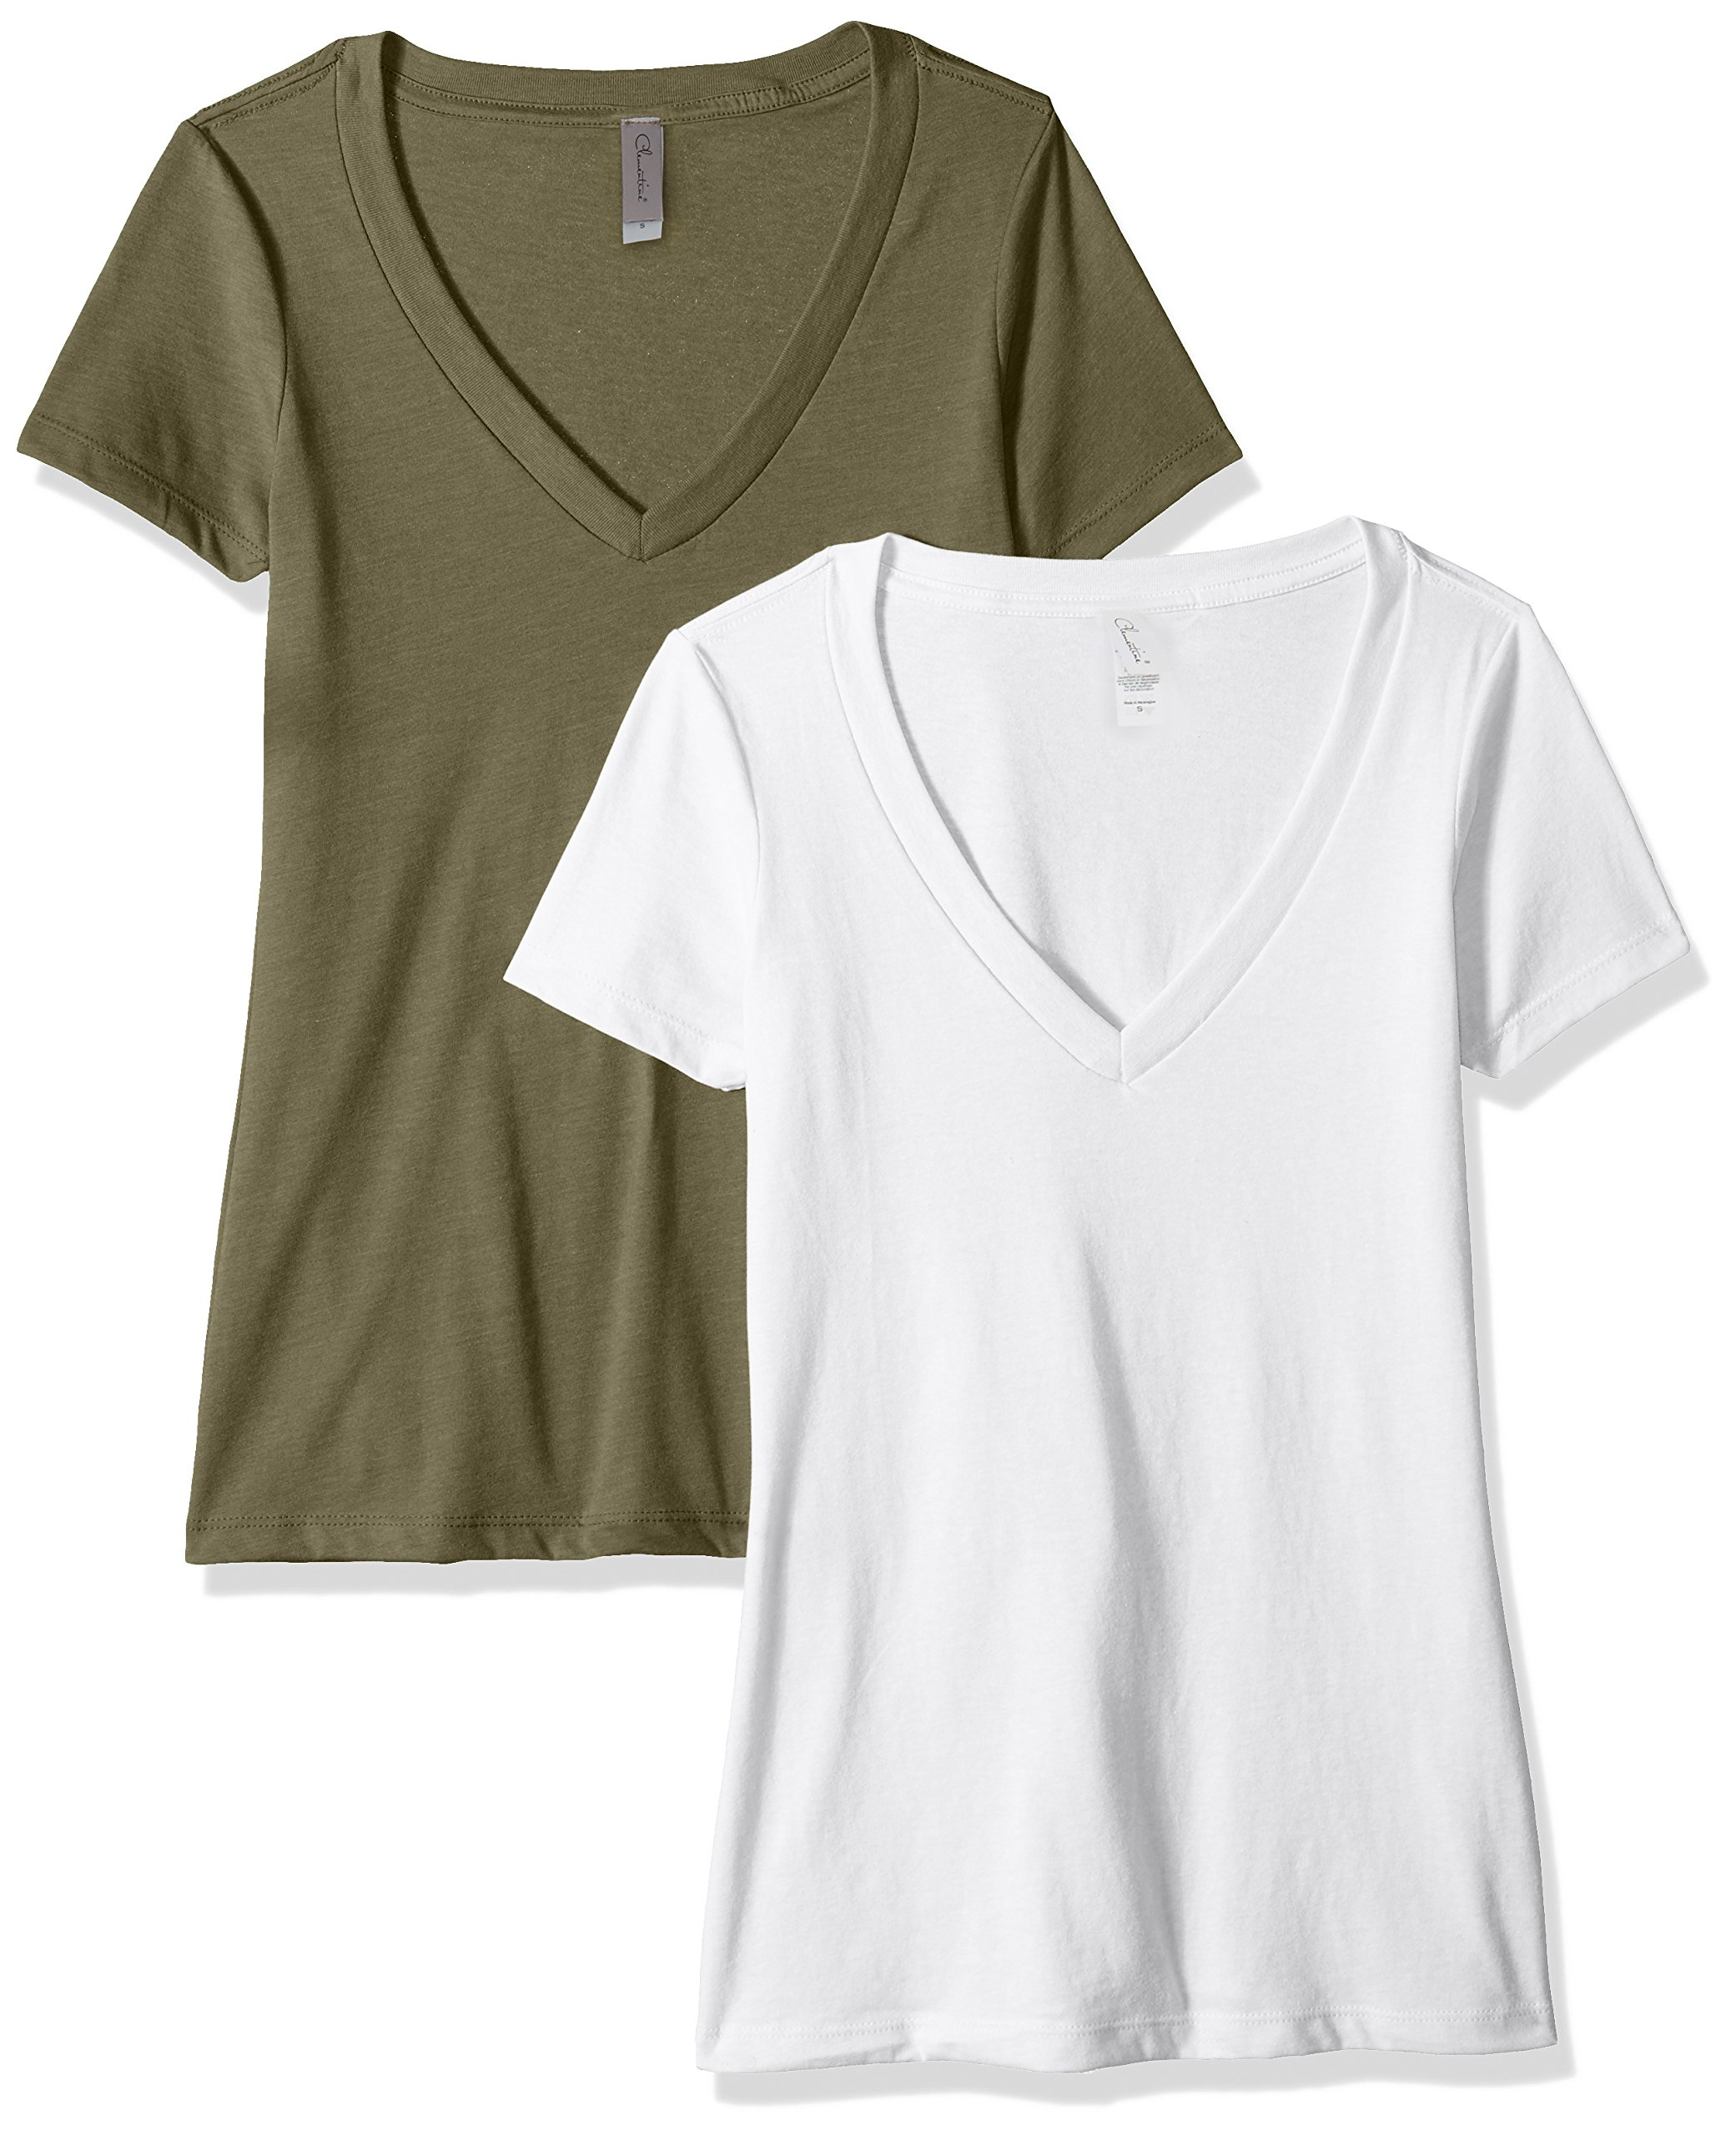 Clementine Apparel Women's Petite Plus Deep V-Neck T-Shirt (Pack of Two), WhiteMilitary, L